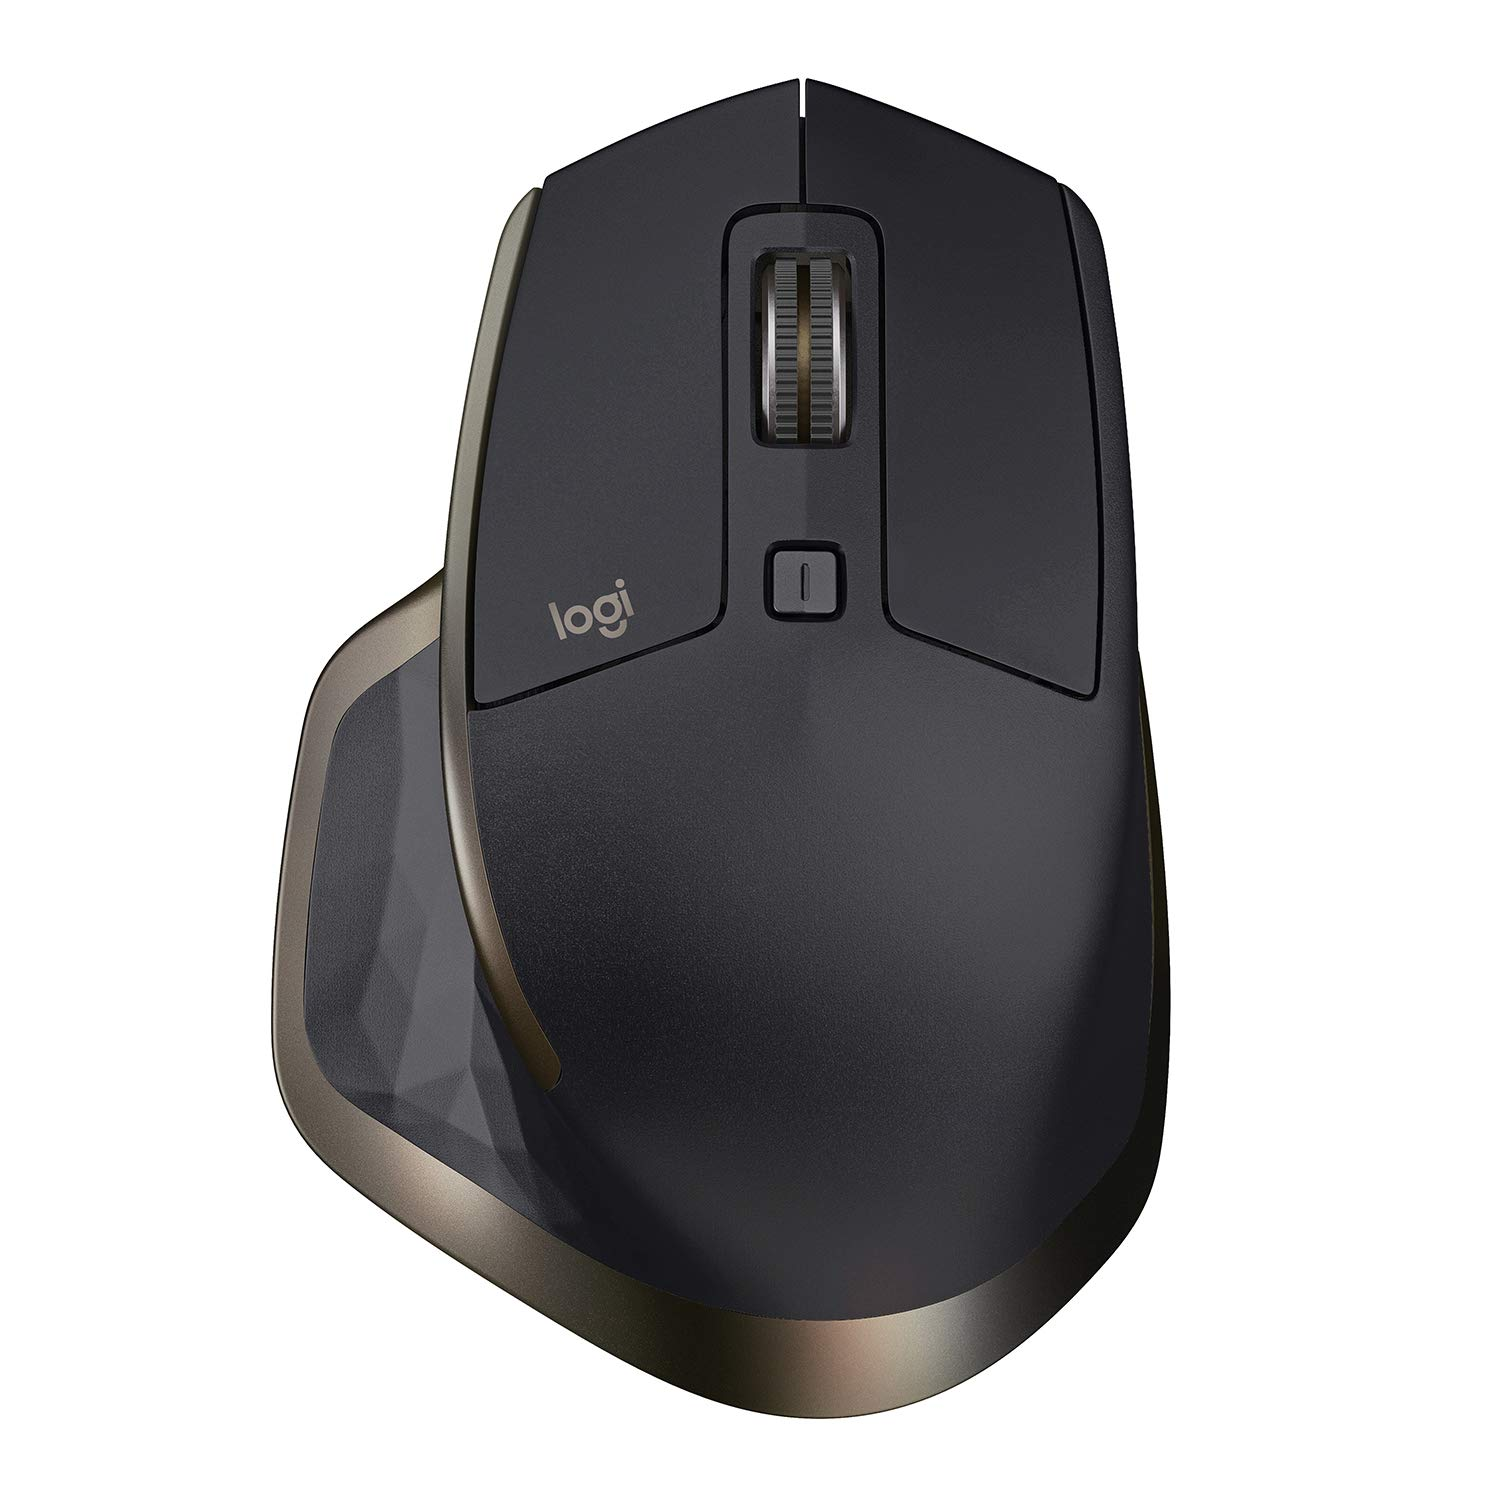 로지텍 MX 마스터 무선 마우스 Logitech MX Master Wireless Mouse – High-Precision Sensor, Speed-Adaptive Scroll Wheel, Easy-Switch up to 3 Devices - Meteorite